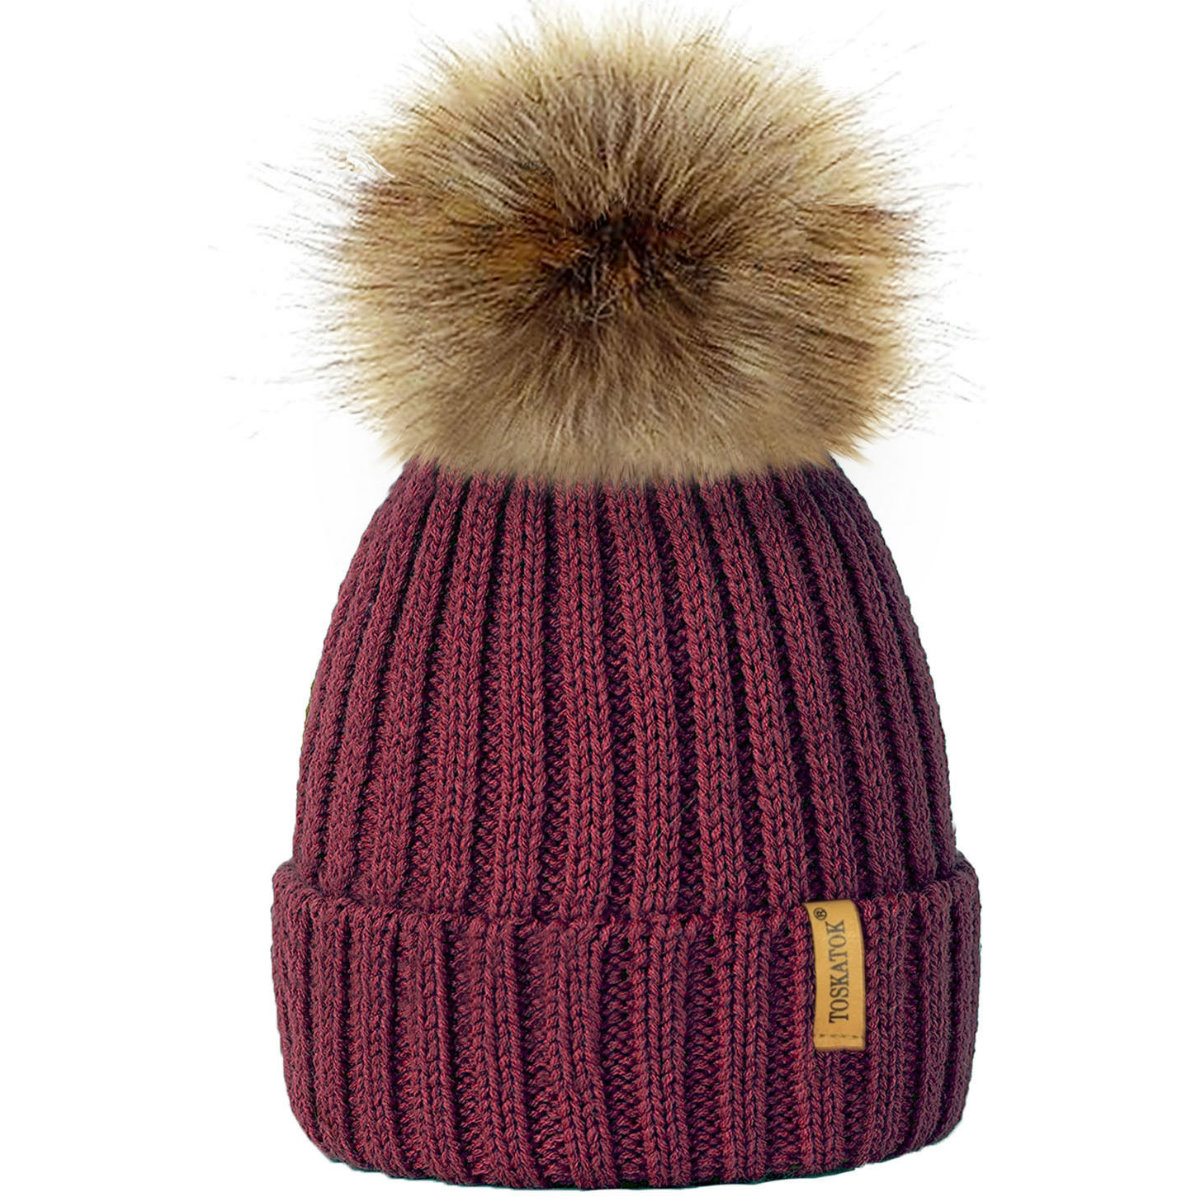 403061fd74f Ribbed Beanie Hat With Detachable Large Faux Fur Pom Pom (Burgundy ...